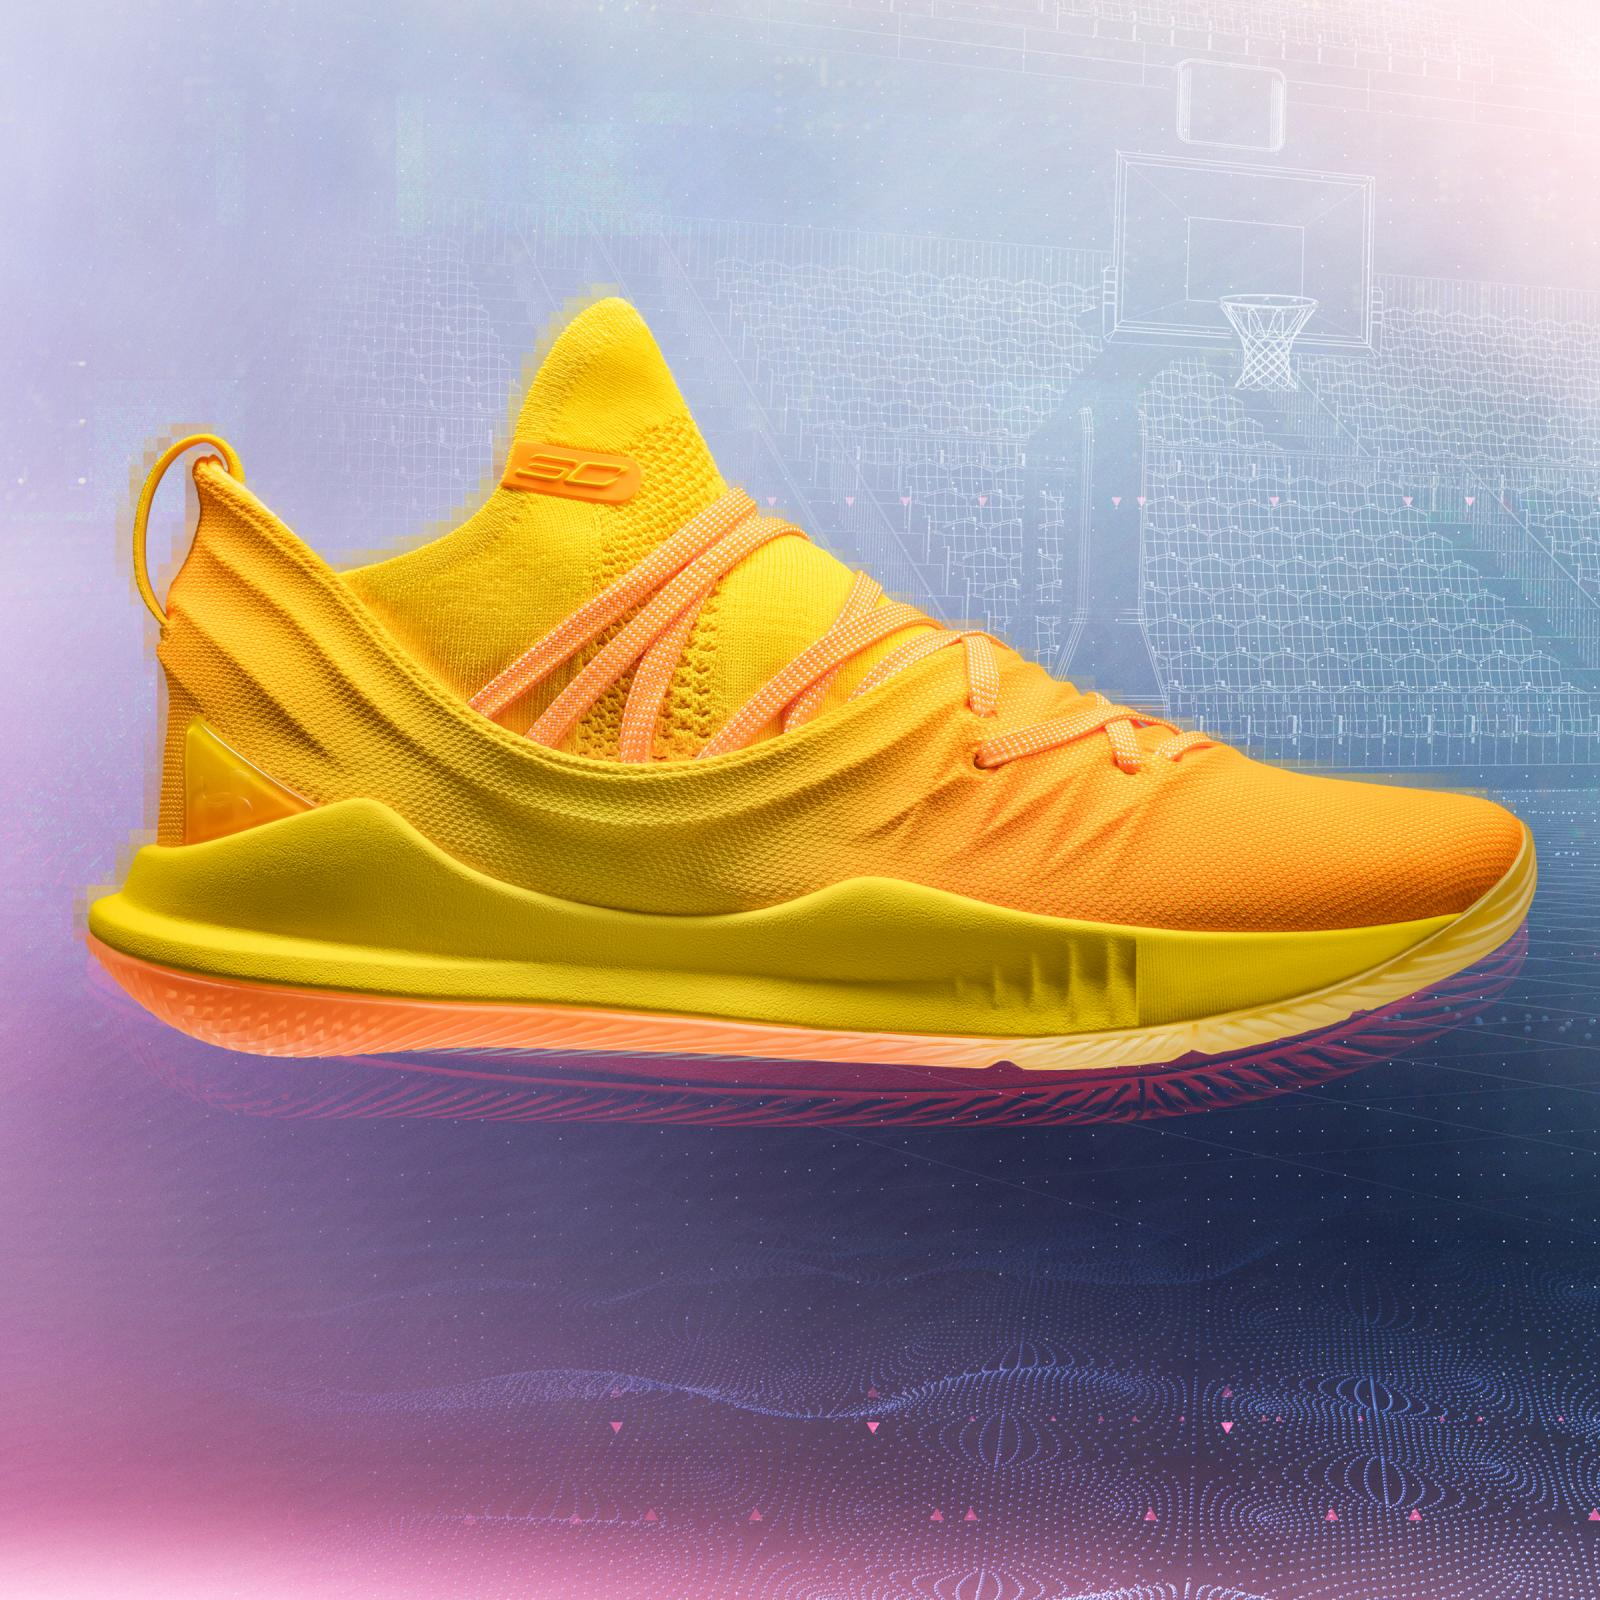 This yellow exclusive colorway of the Curry 5 is available only for fans in Manila, Wuhan and Tokyo.